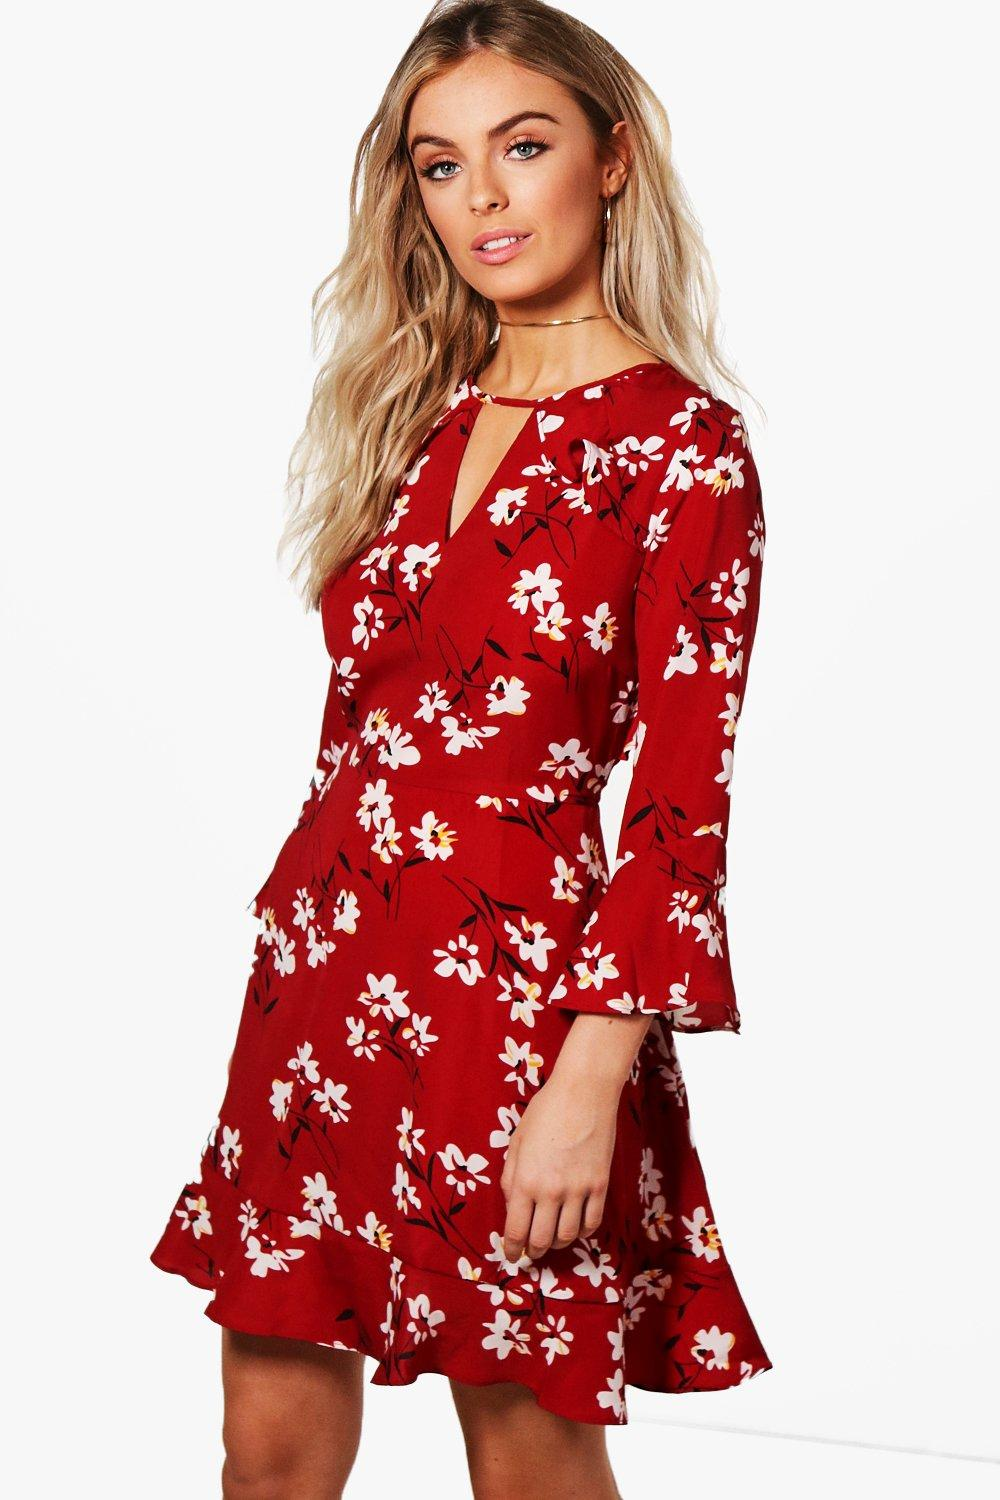 676fd738cc89 Floral Ruffle Tea Dress. Hover to zoom